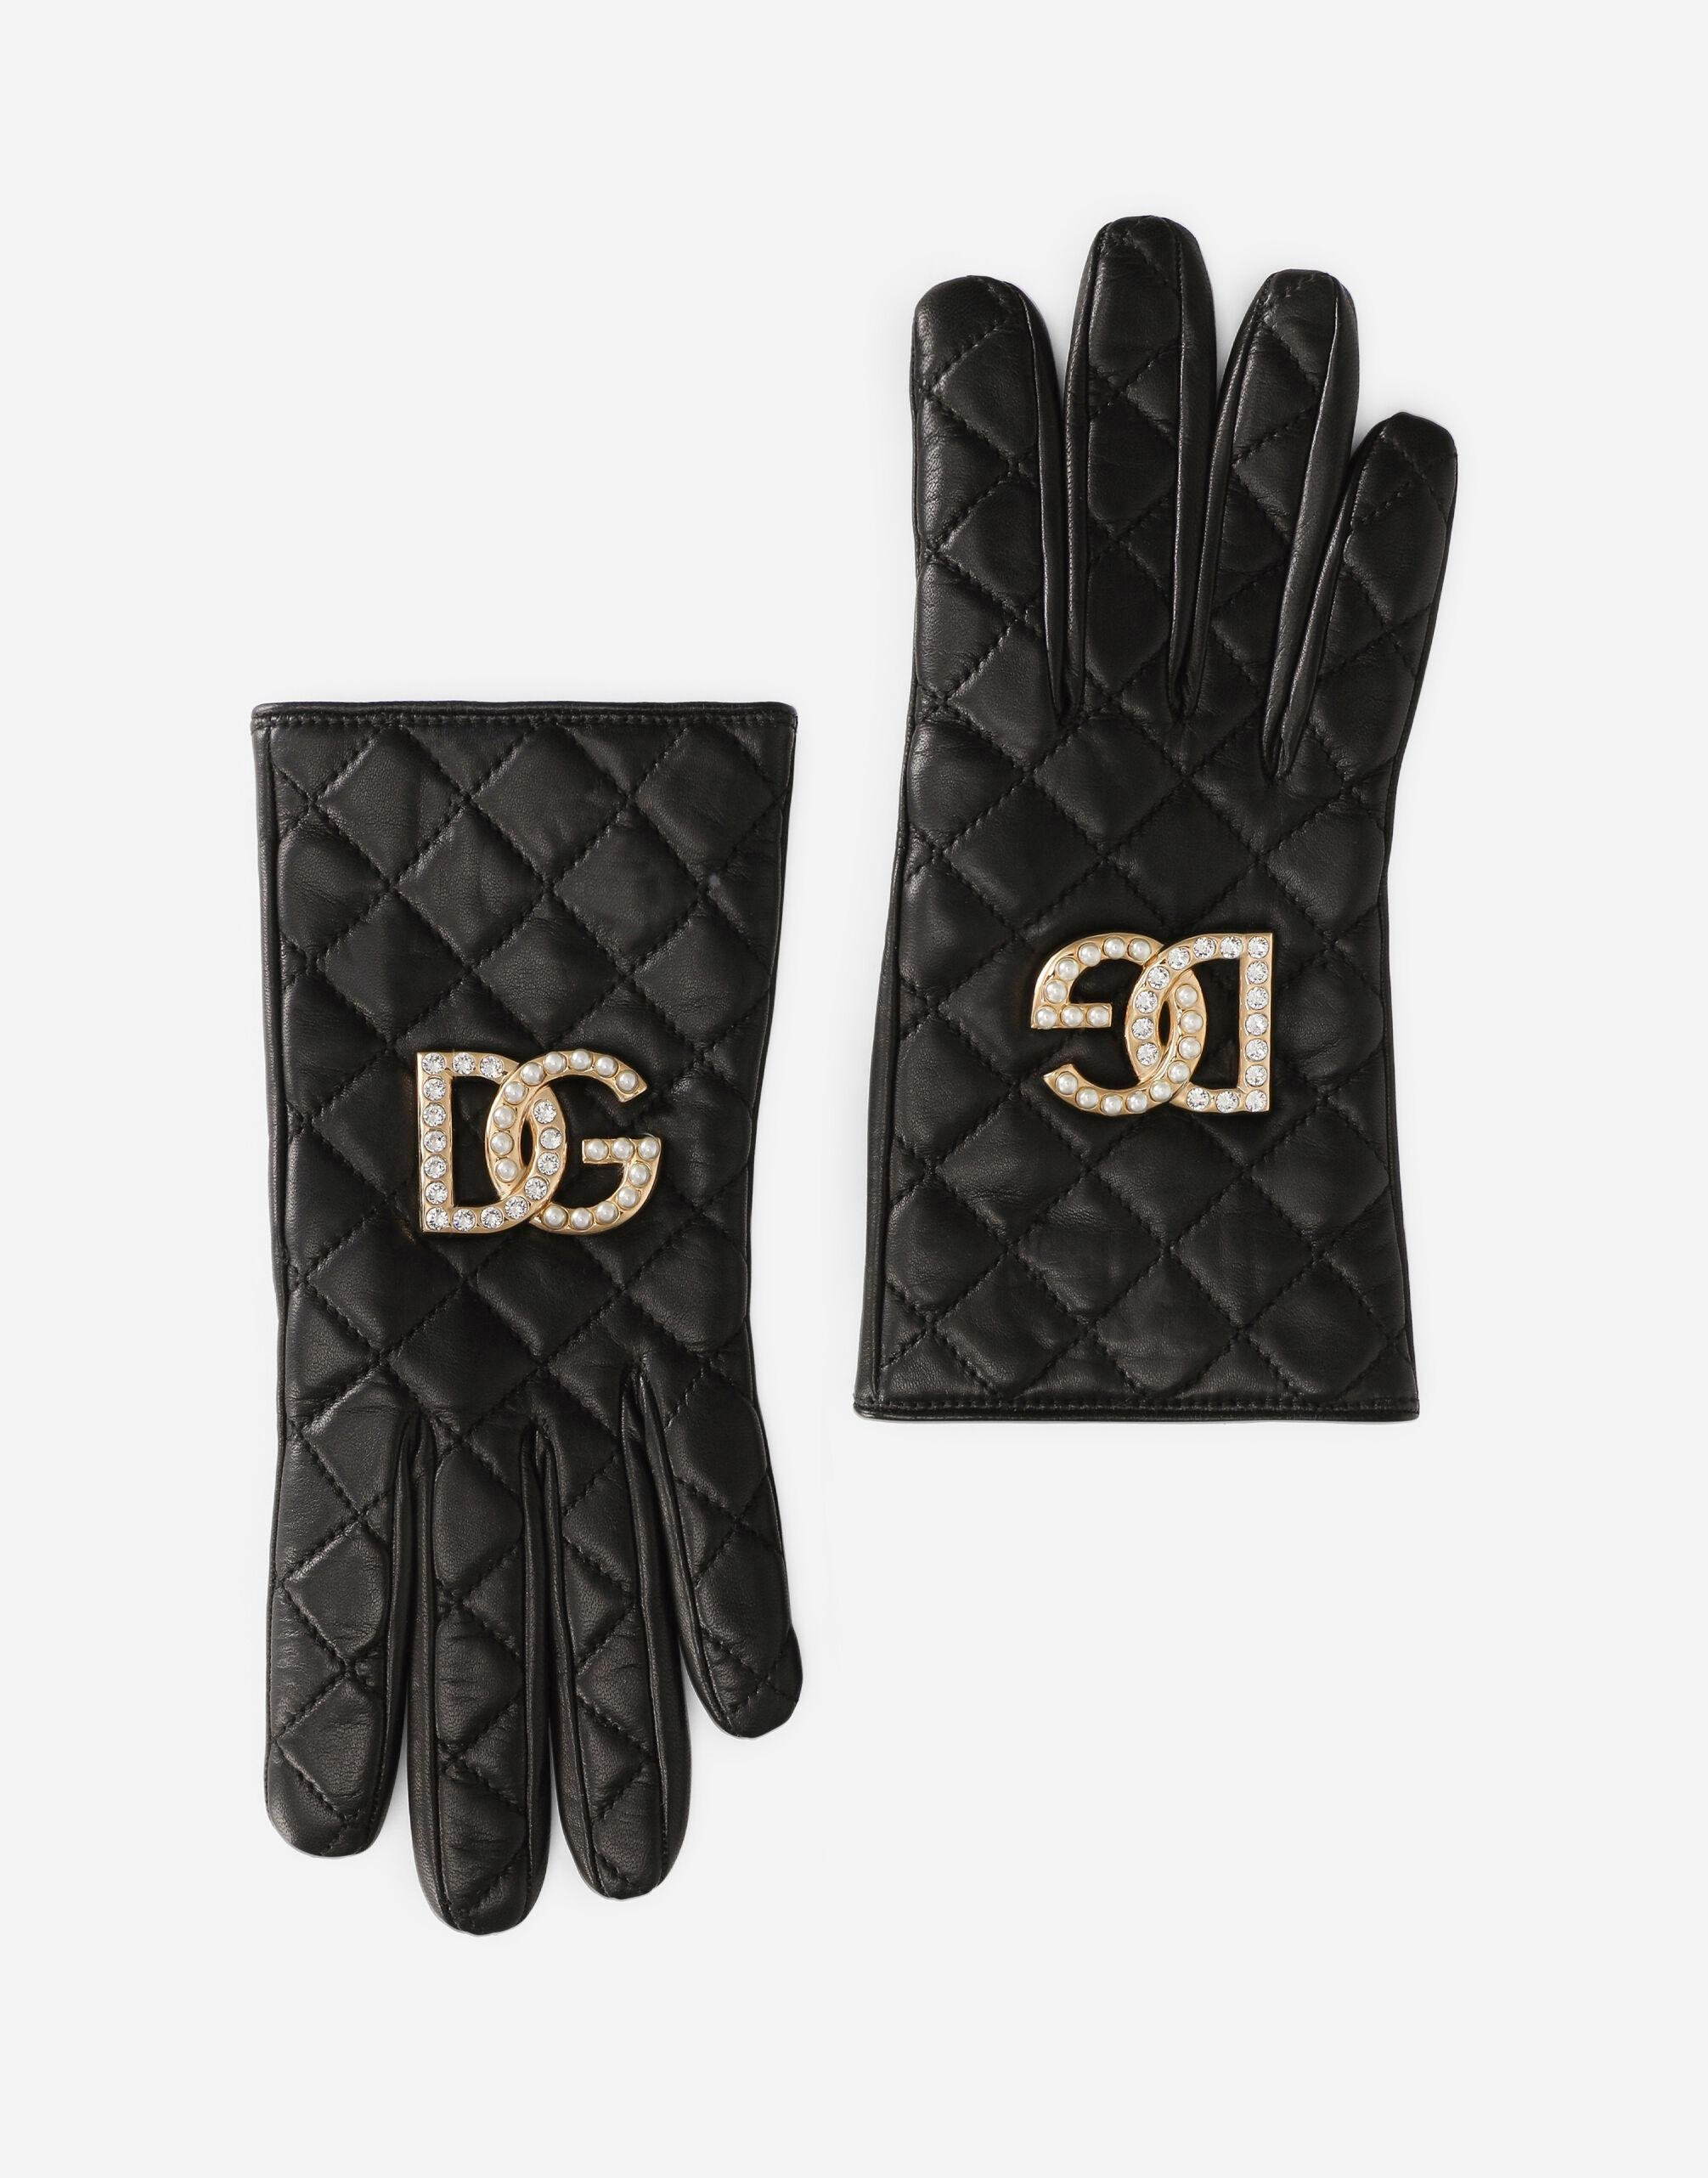 Quilted nappa leather gloves with DG logo